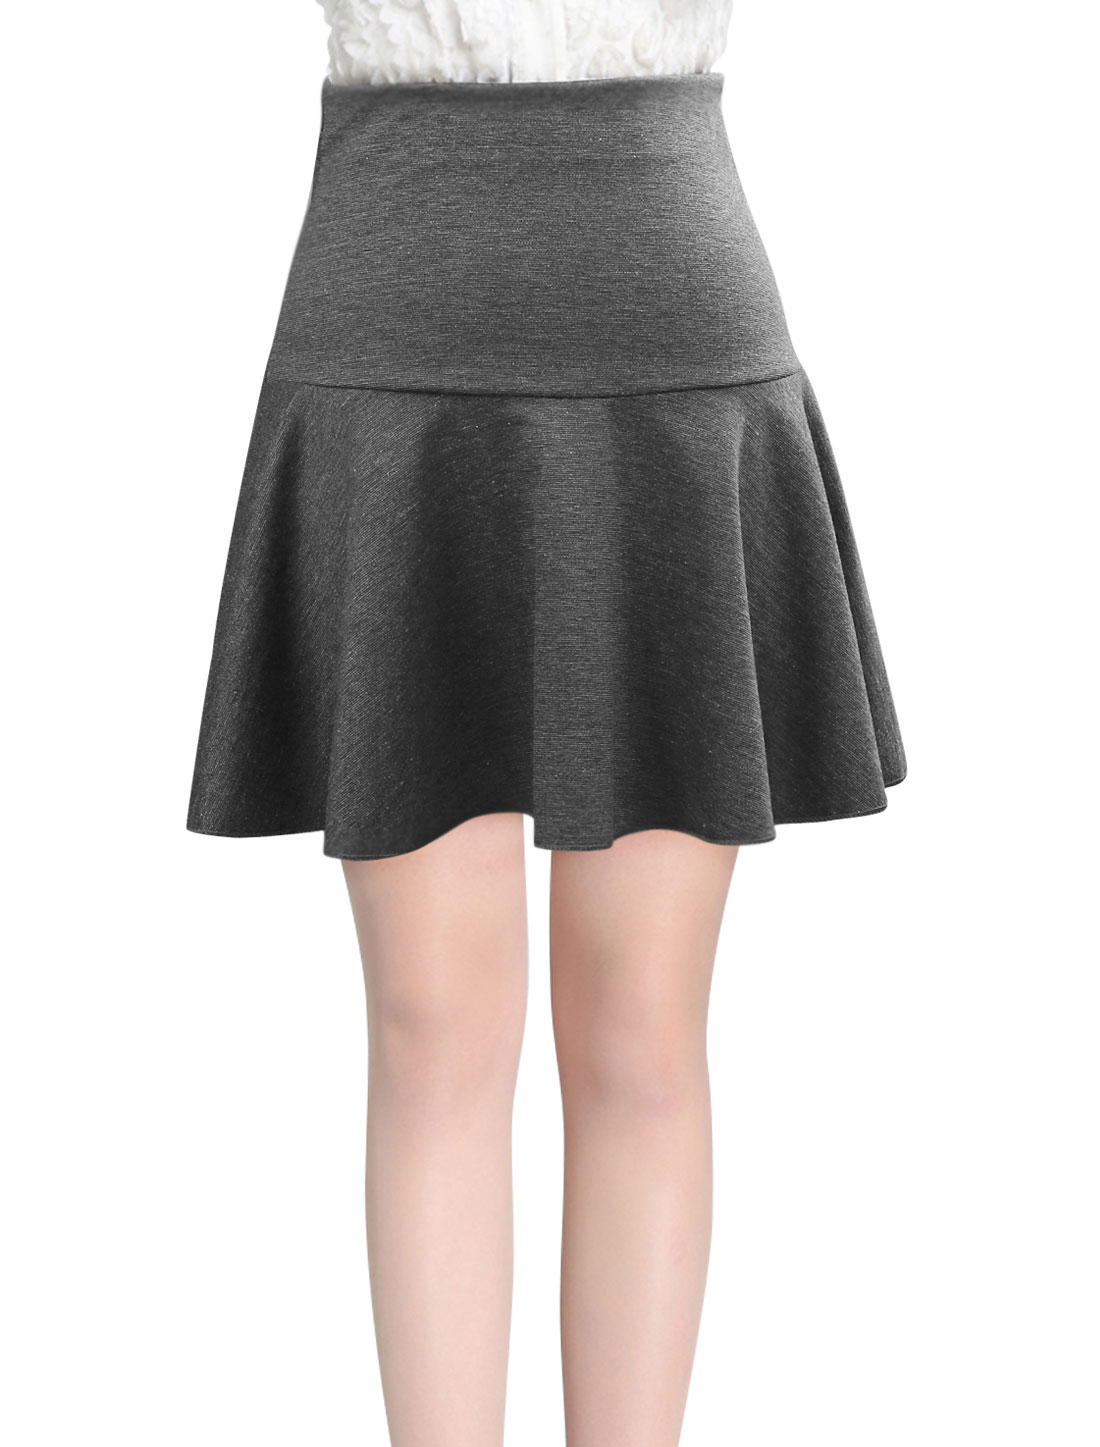 Lady Conceal Zipper Back Leisure Fit w Flare Skirt Gray S